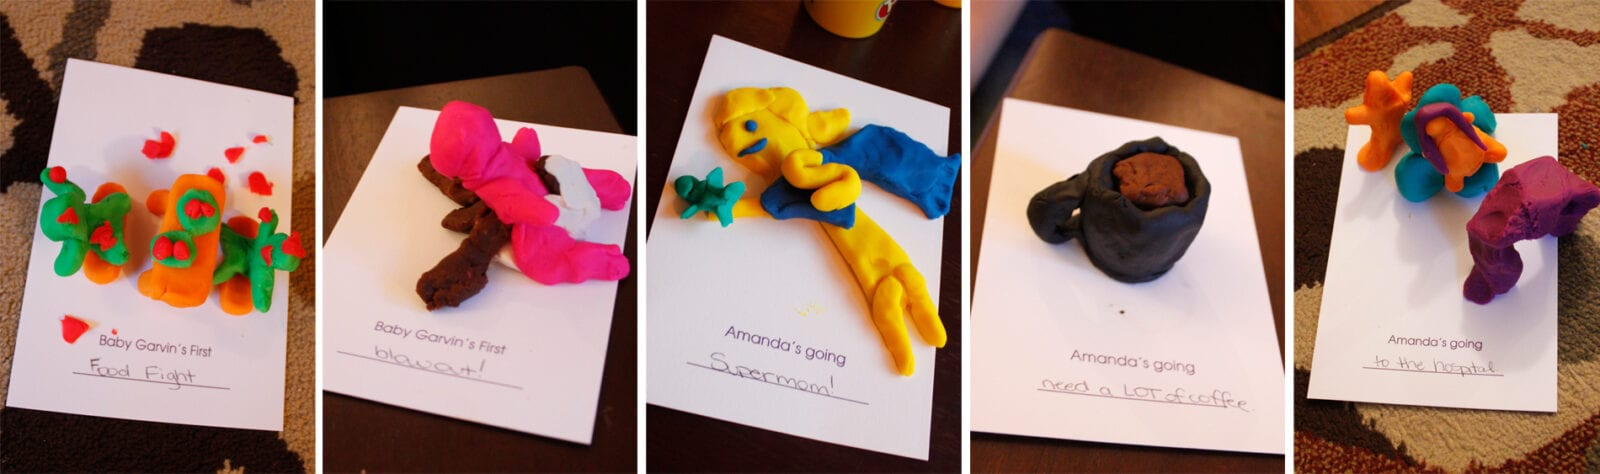 Baby shower games with play doh